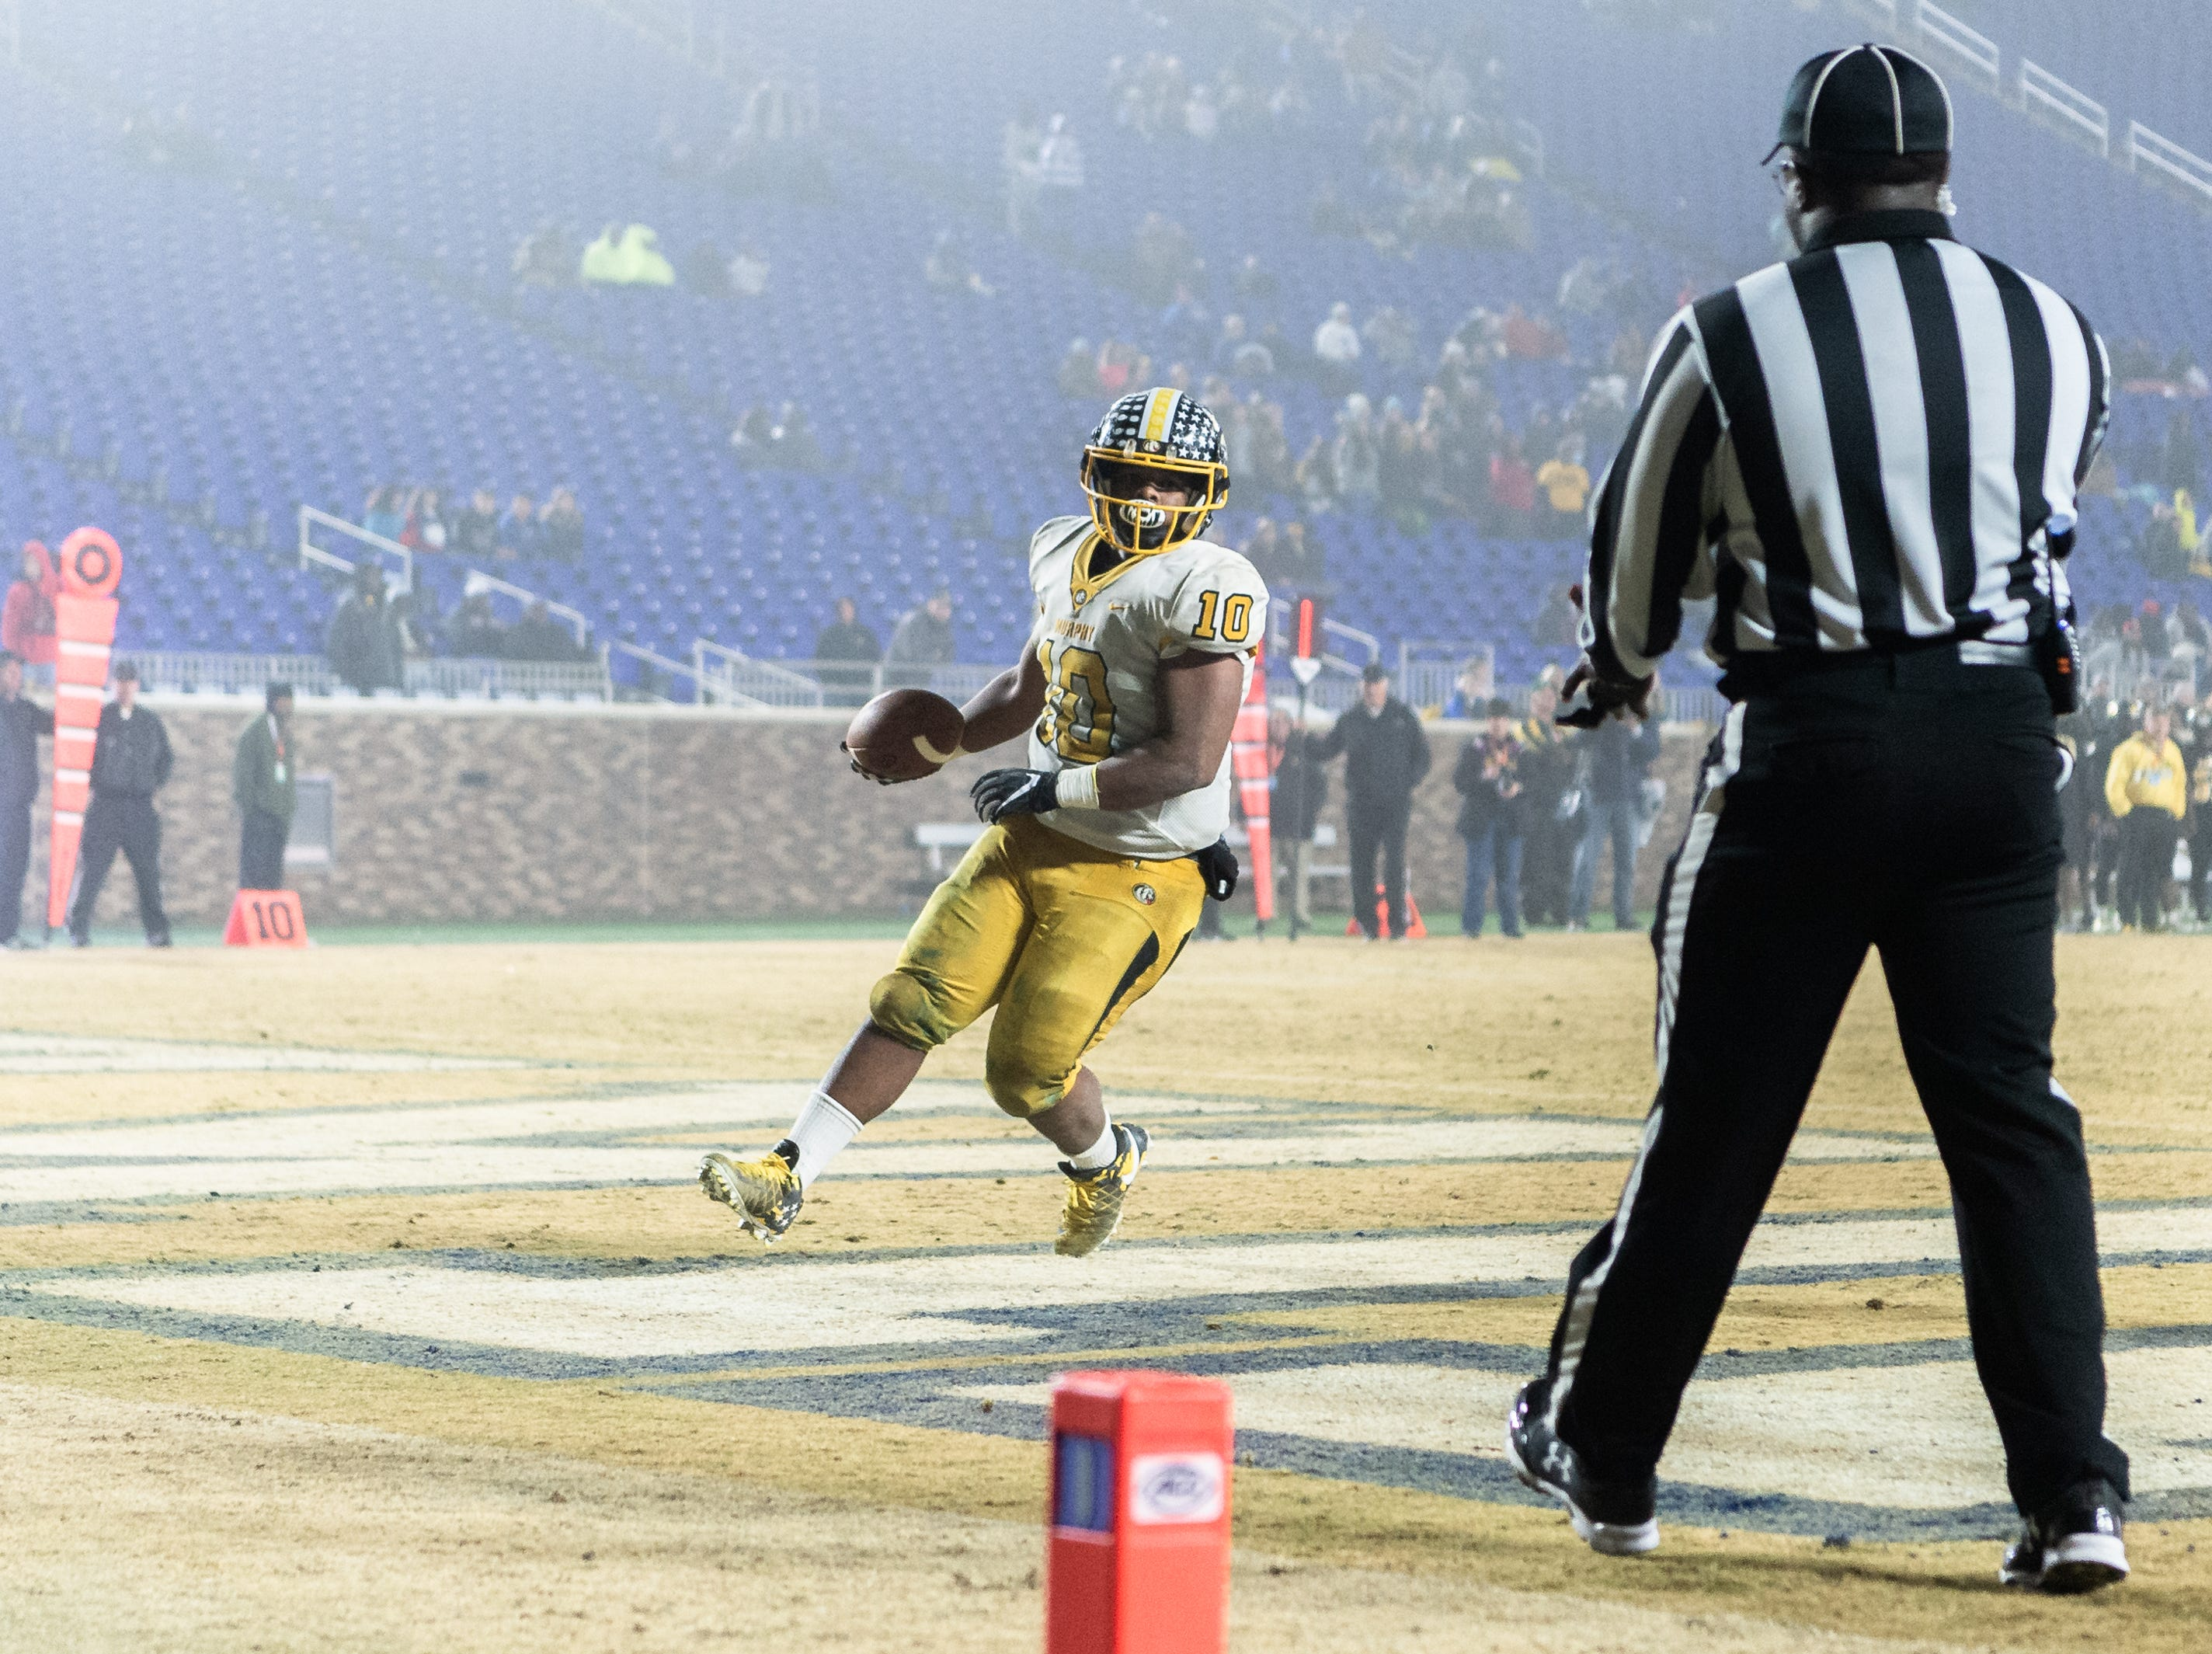 Murphy High School (12-1) and Pamlico County High School (13-1) took to the field at Wallace Wade Stadium at Duke University in Durham for their 1A state title game Dec. 15, 2018.